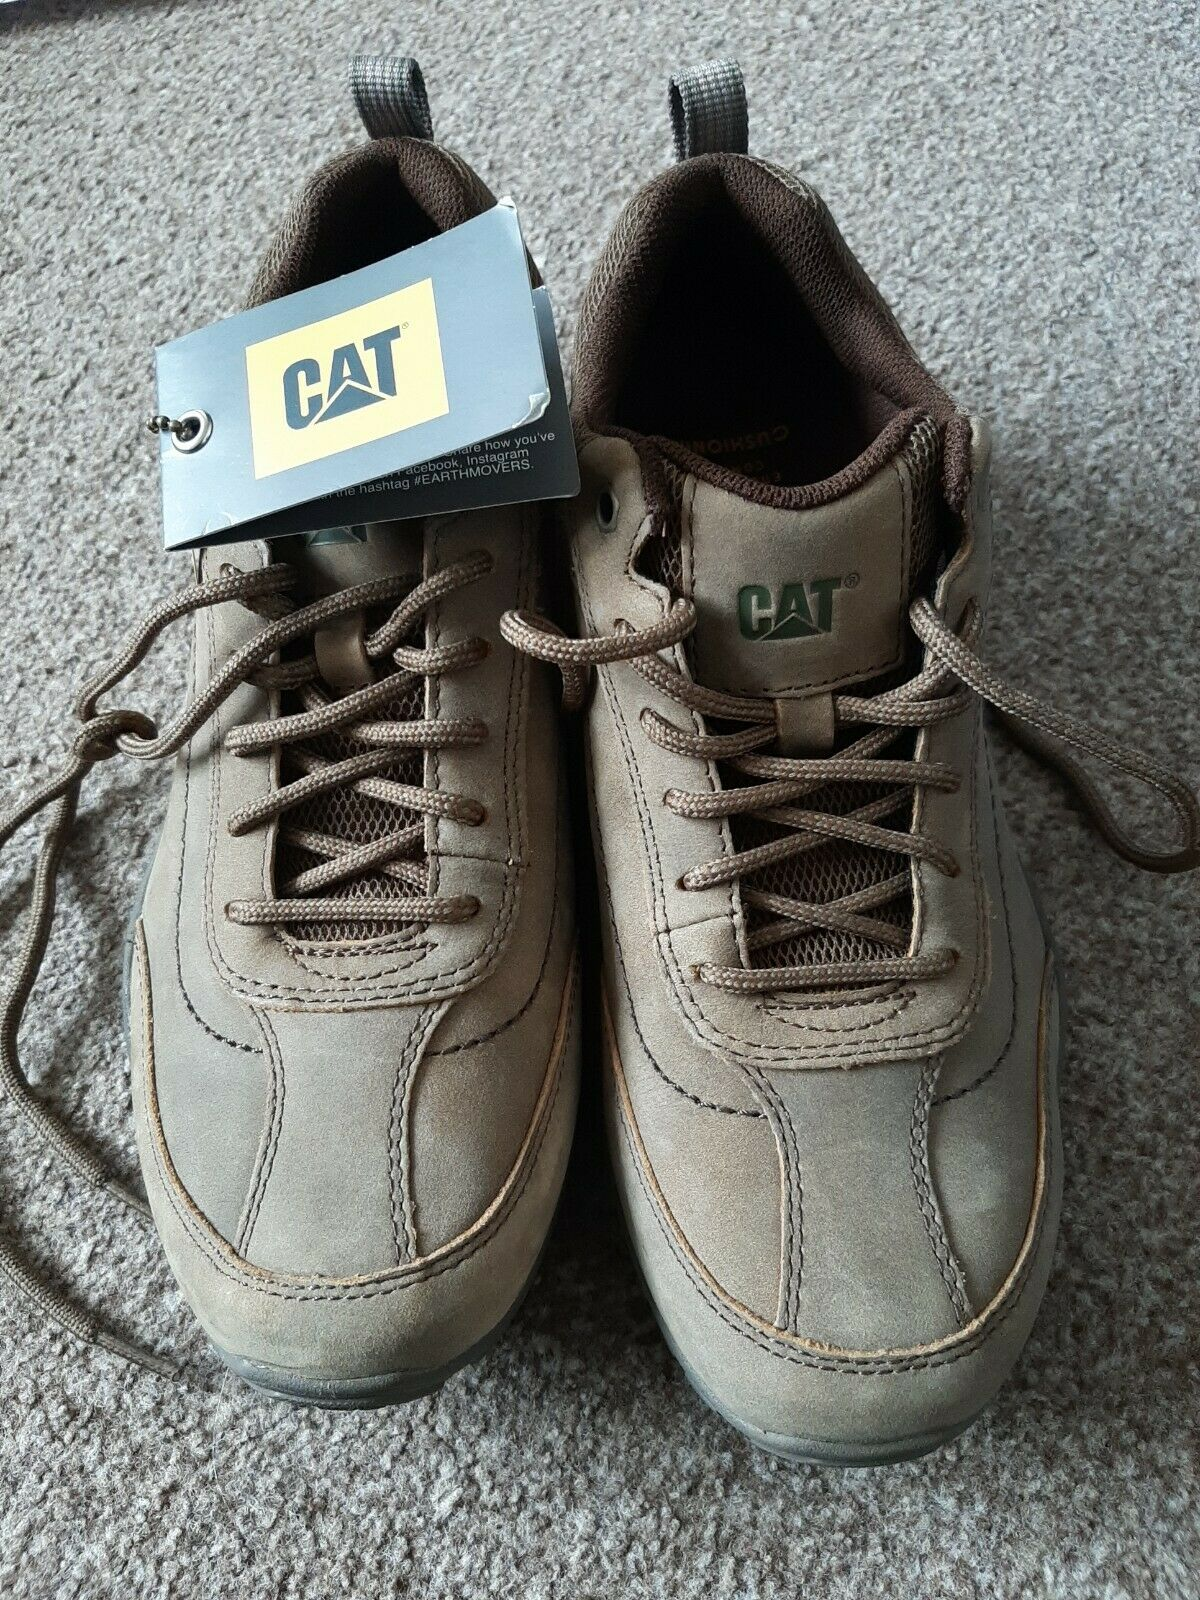 Mens Caterpillar Walking Shoes Boots Size 7 ease technology new